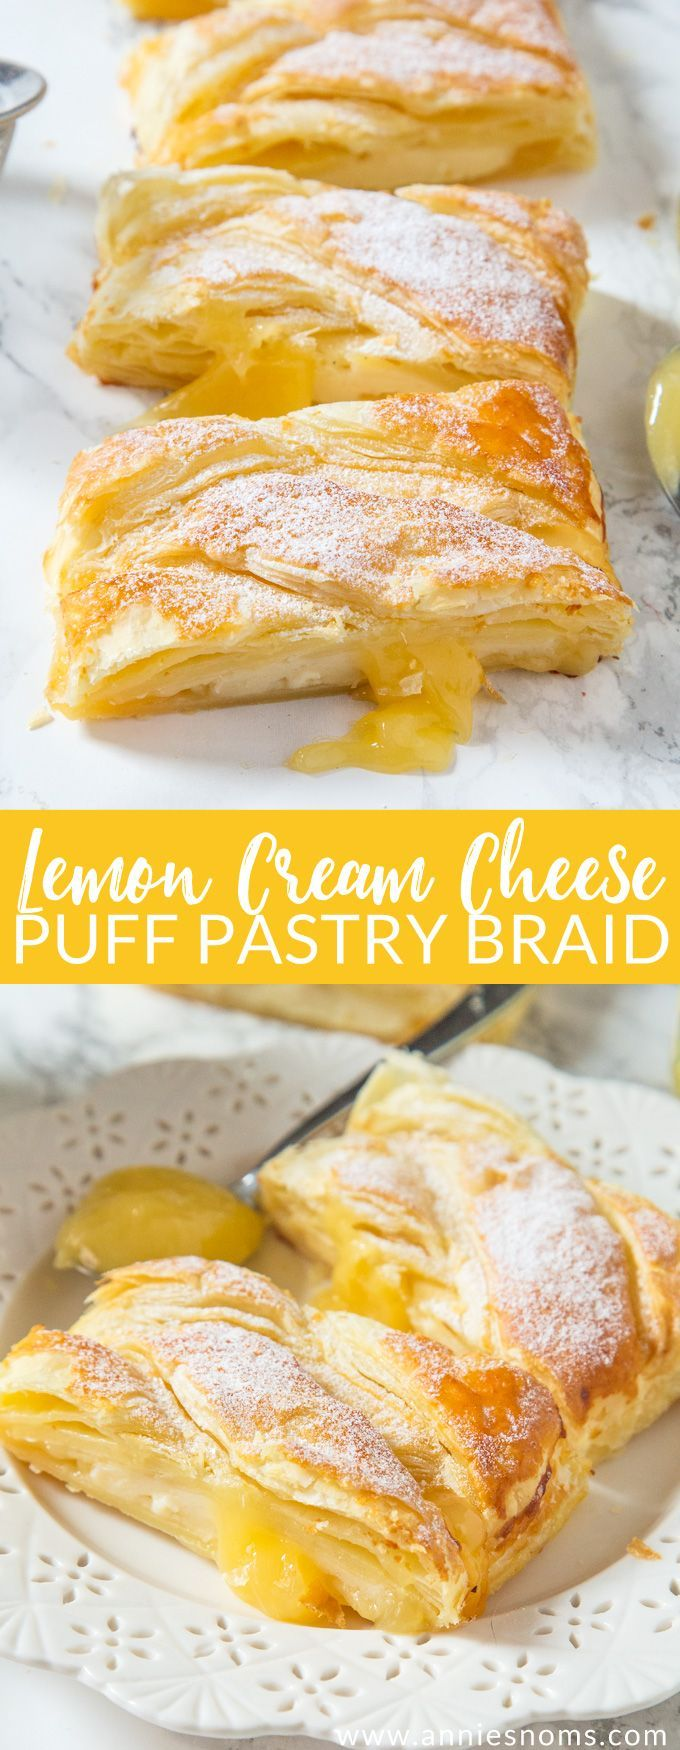 This Lemon Cream Cheese braid is ready in under 30 minutes! Flaky pastry filled with lemon curd & cream cheese to create a sweet dessert everyone will love!